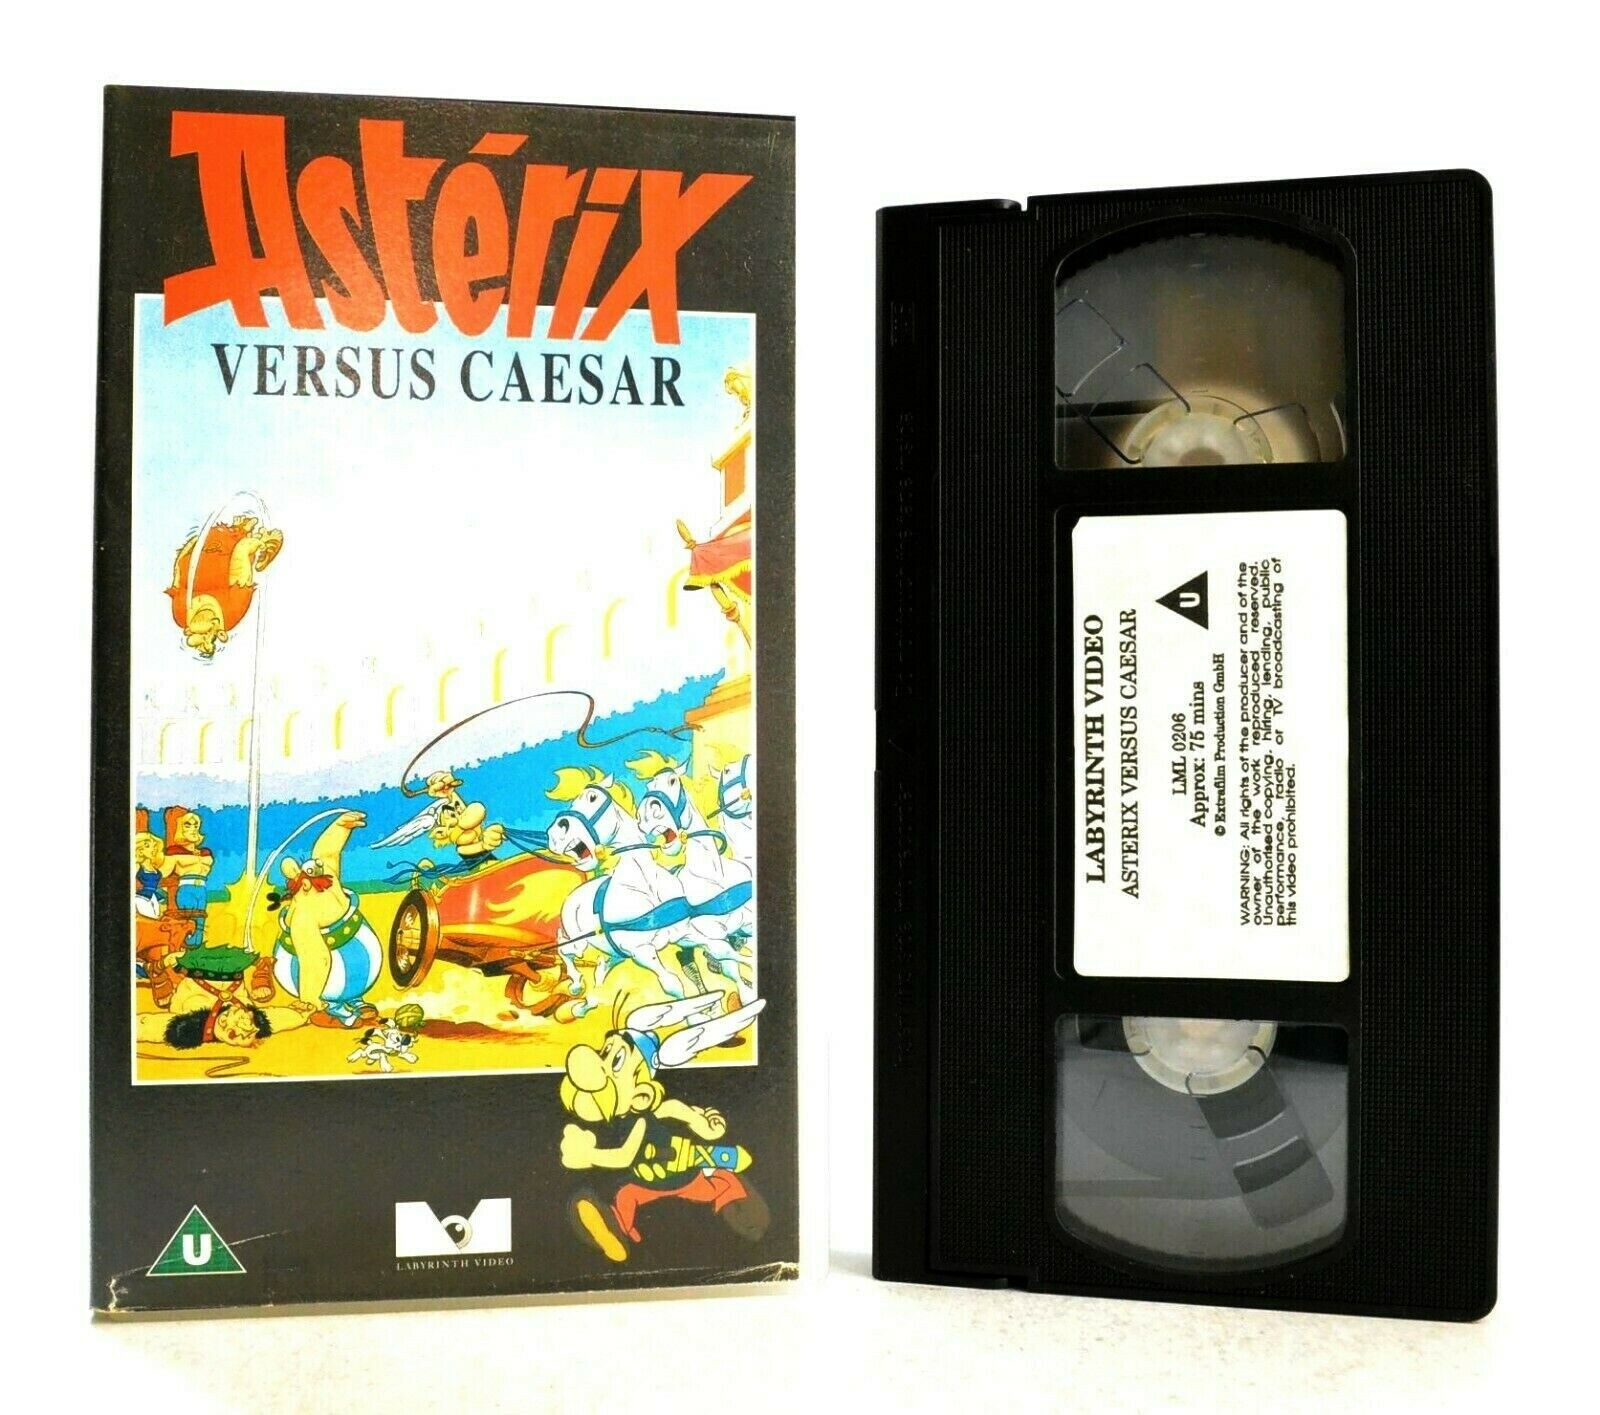 Animated, Asterix, Children's & Family, Classic, Pal, U, United Kingdom, Versus, VHS